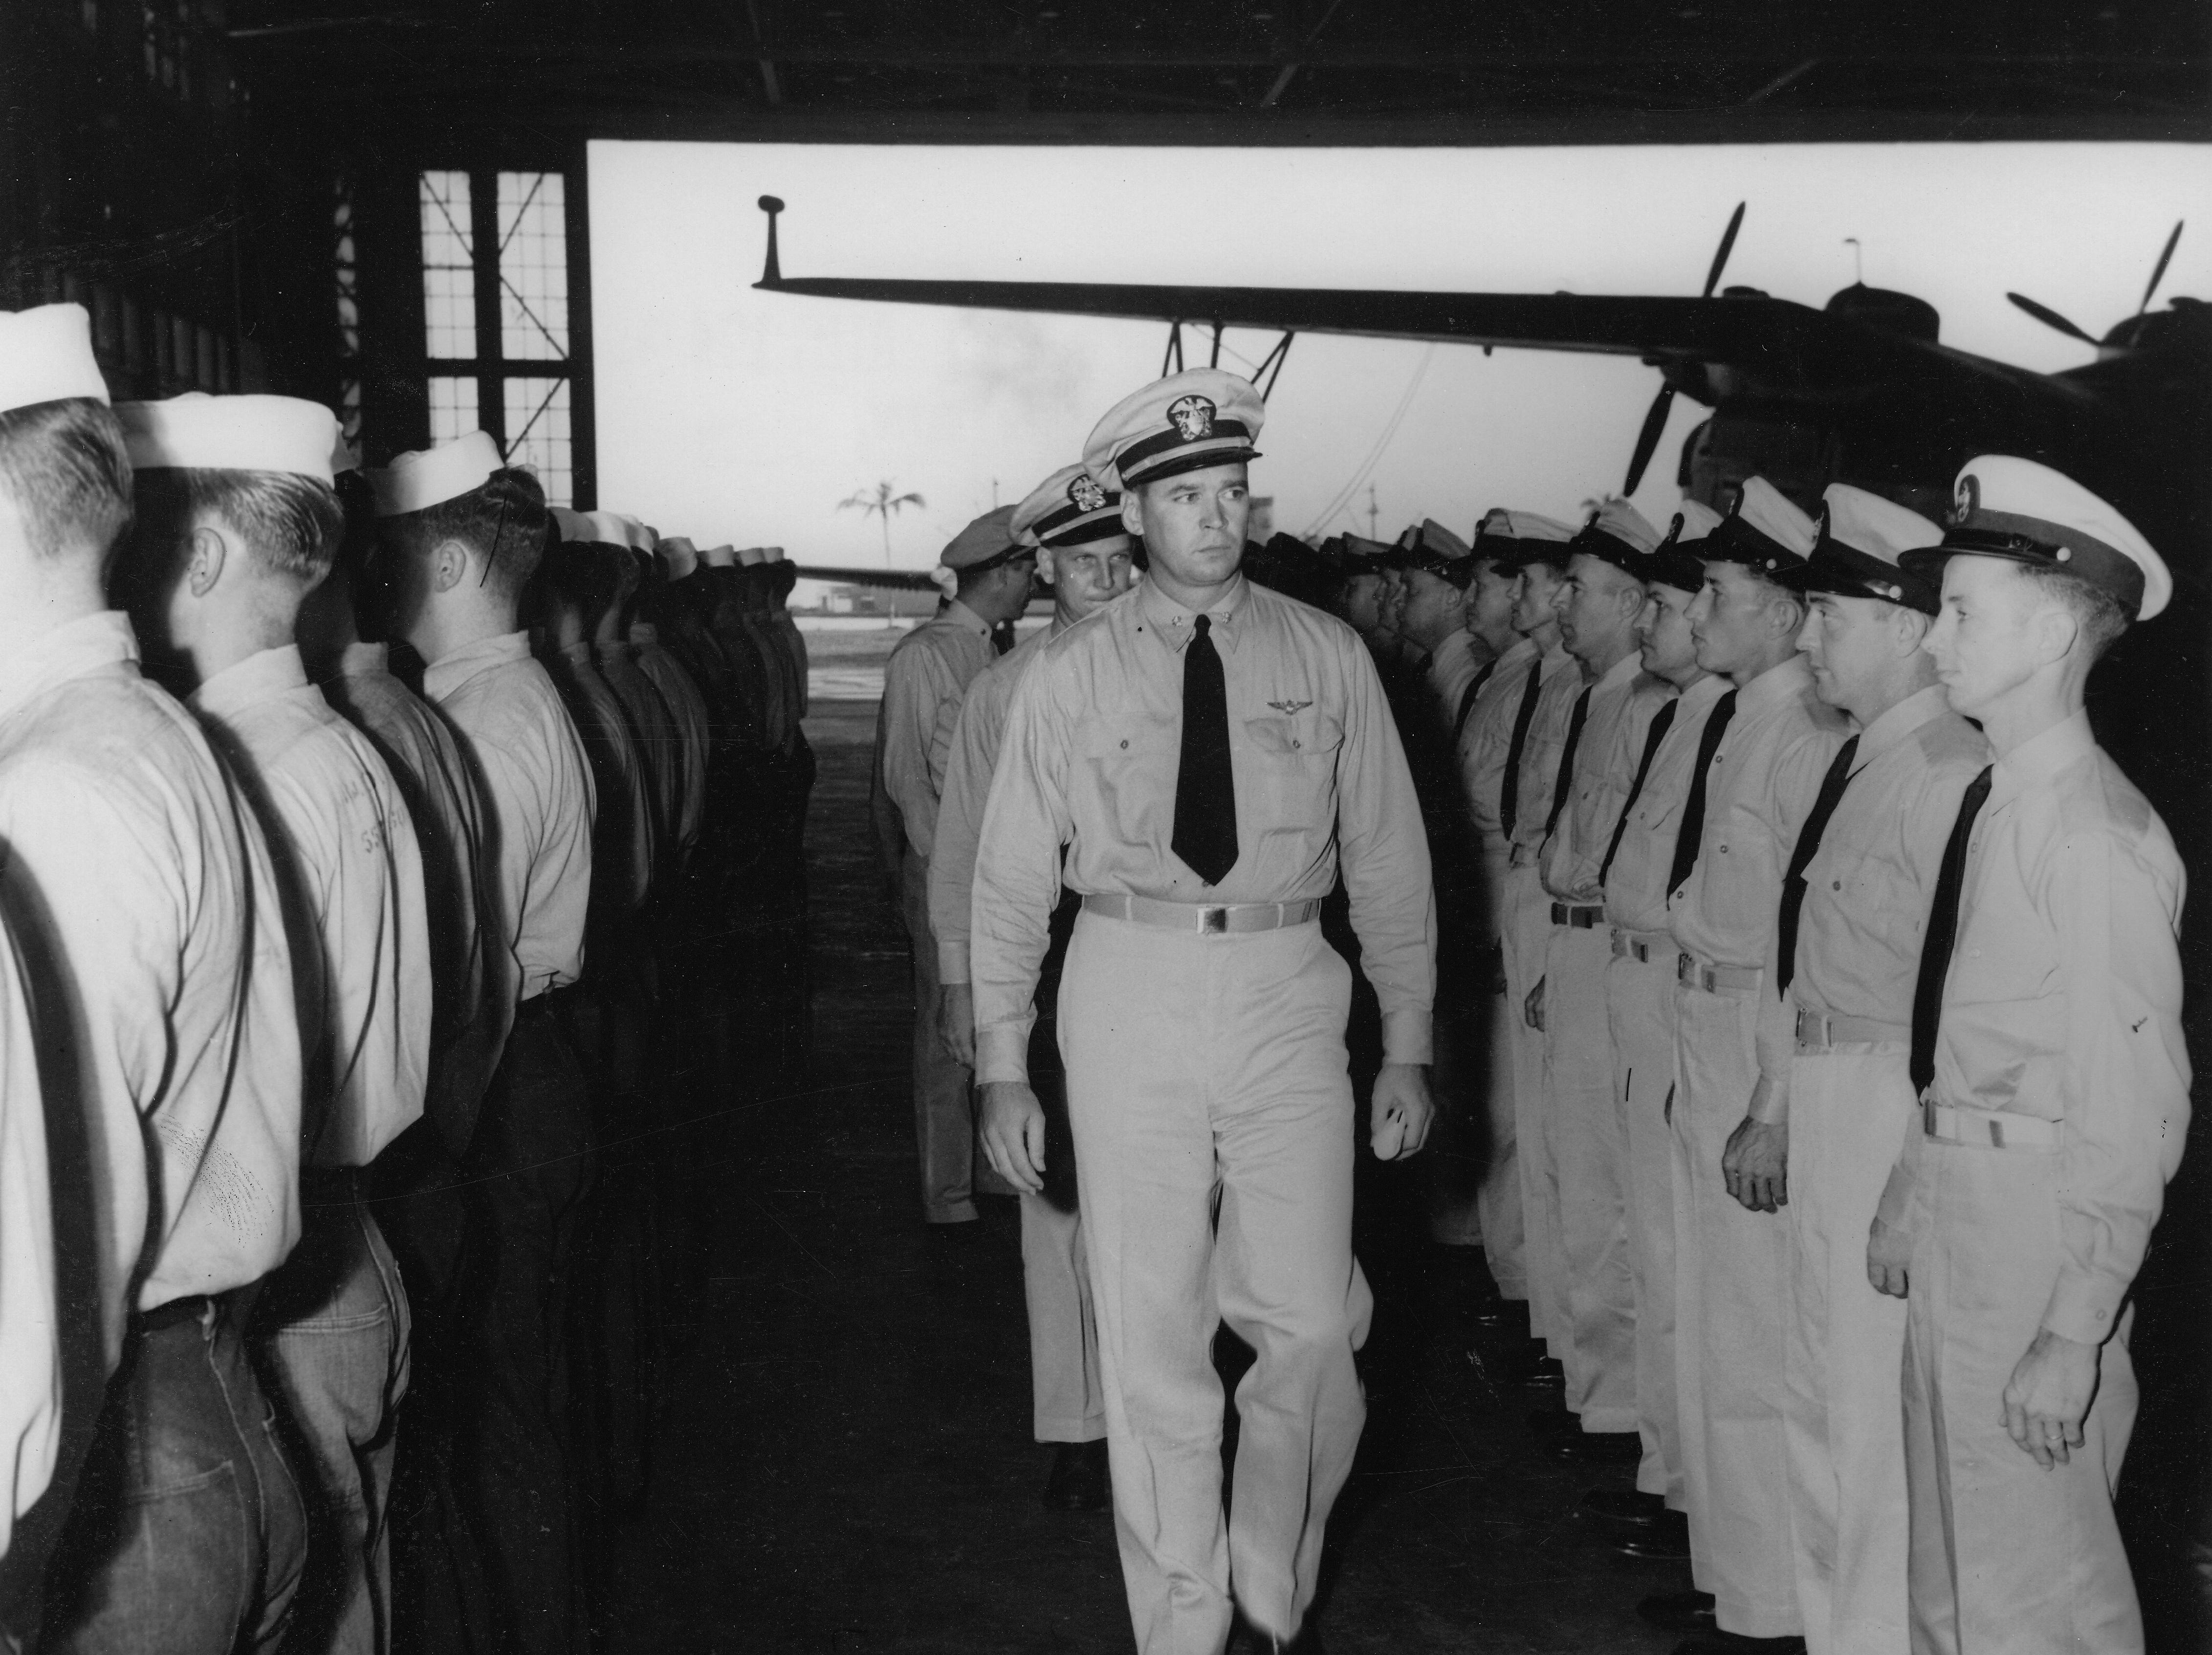 Cleo J. Dobson during his Change of Command Inspection, December 1944.